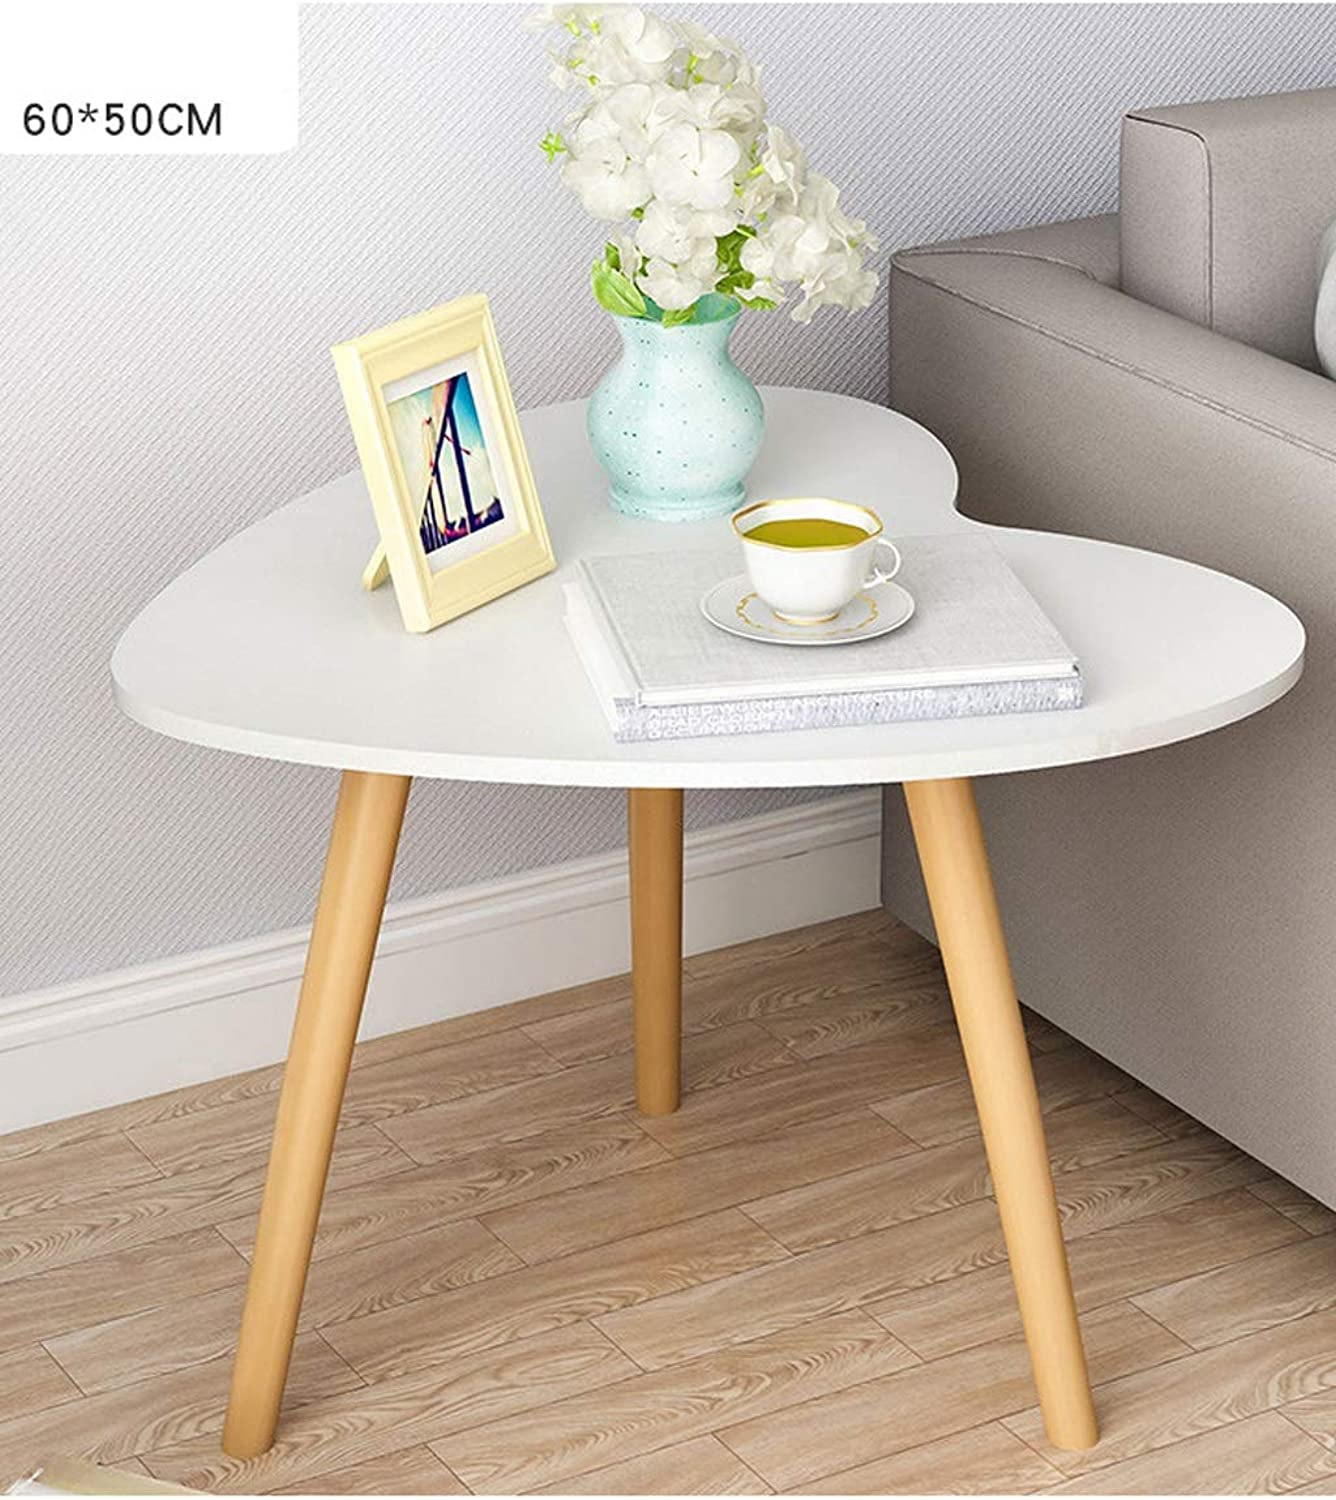 Small Coffee Table, Bedside Table, Sofa Side Table, Modern Small Table